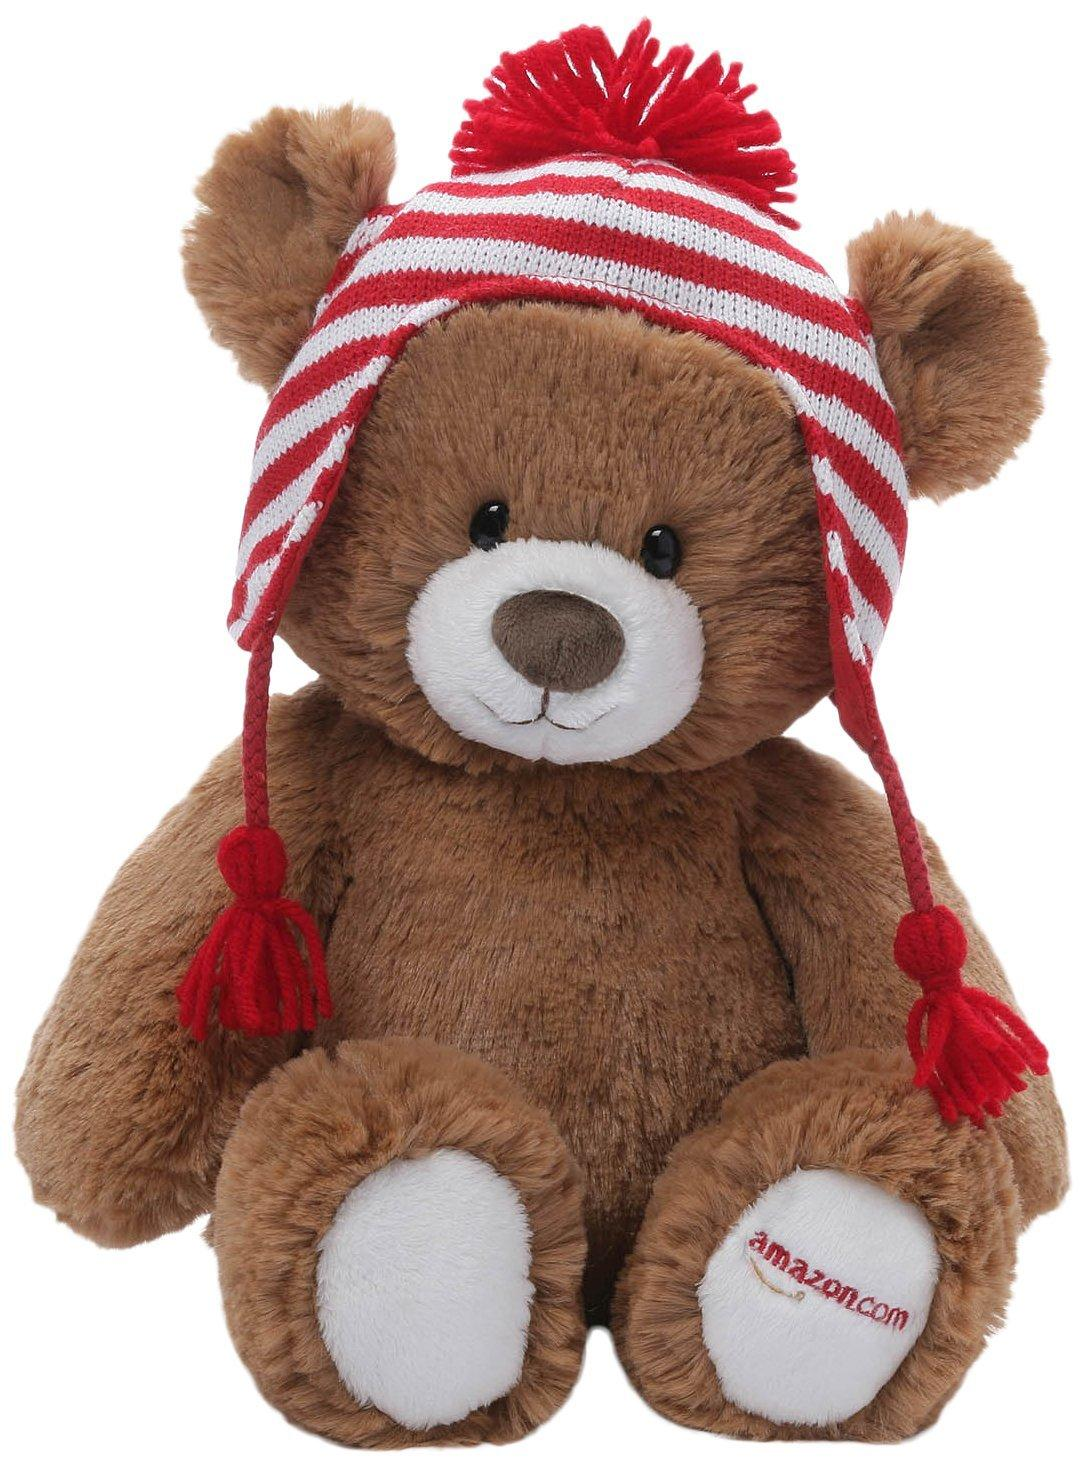 Receive a Free 2015 Amazon Holiday Bear Spend $100 in Toy Purchase @ Amazon.com